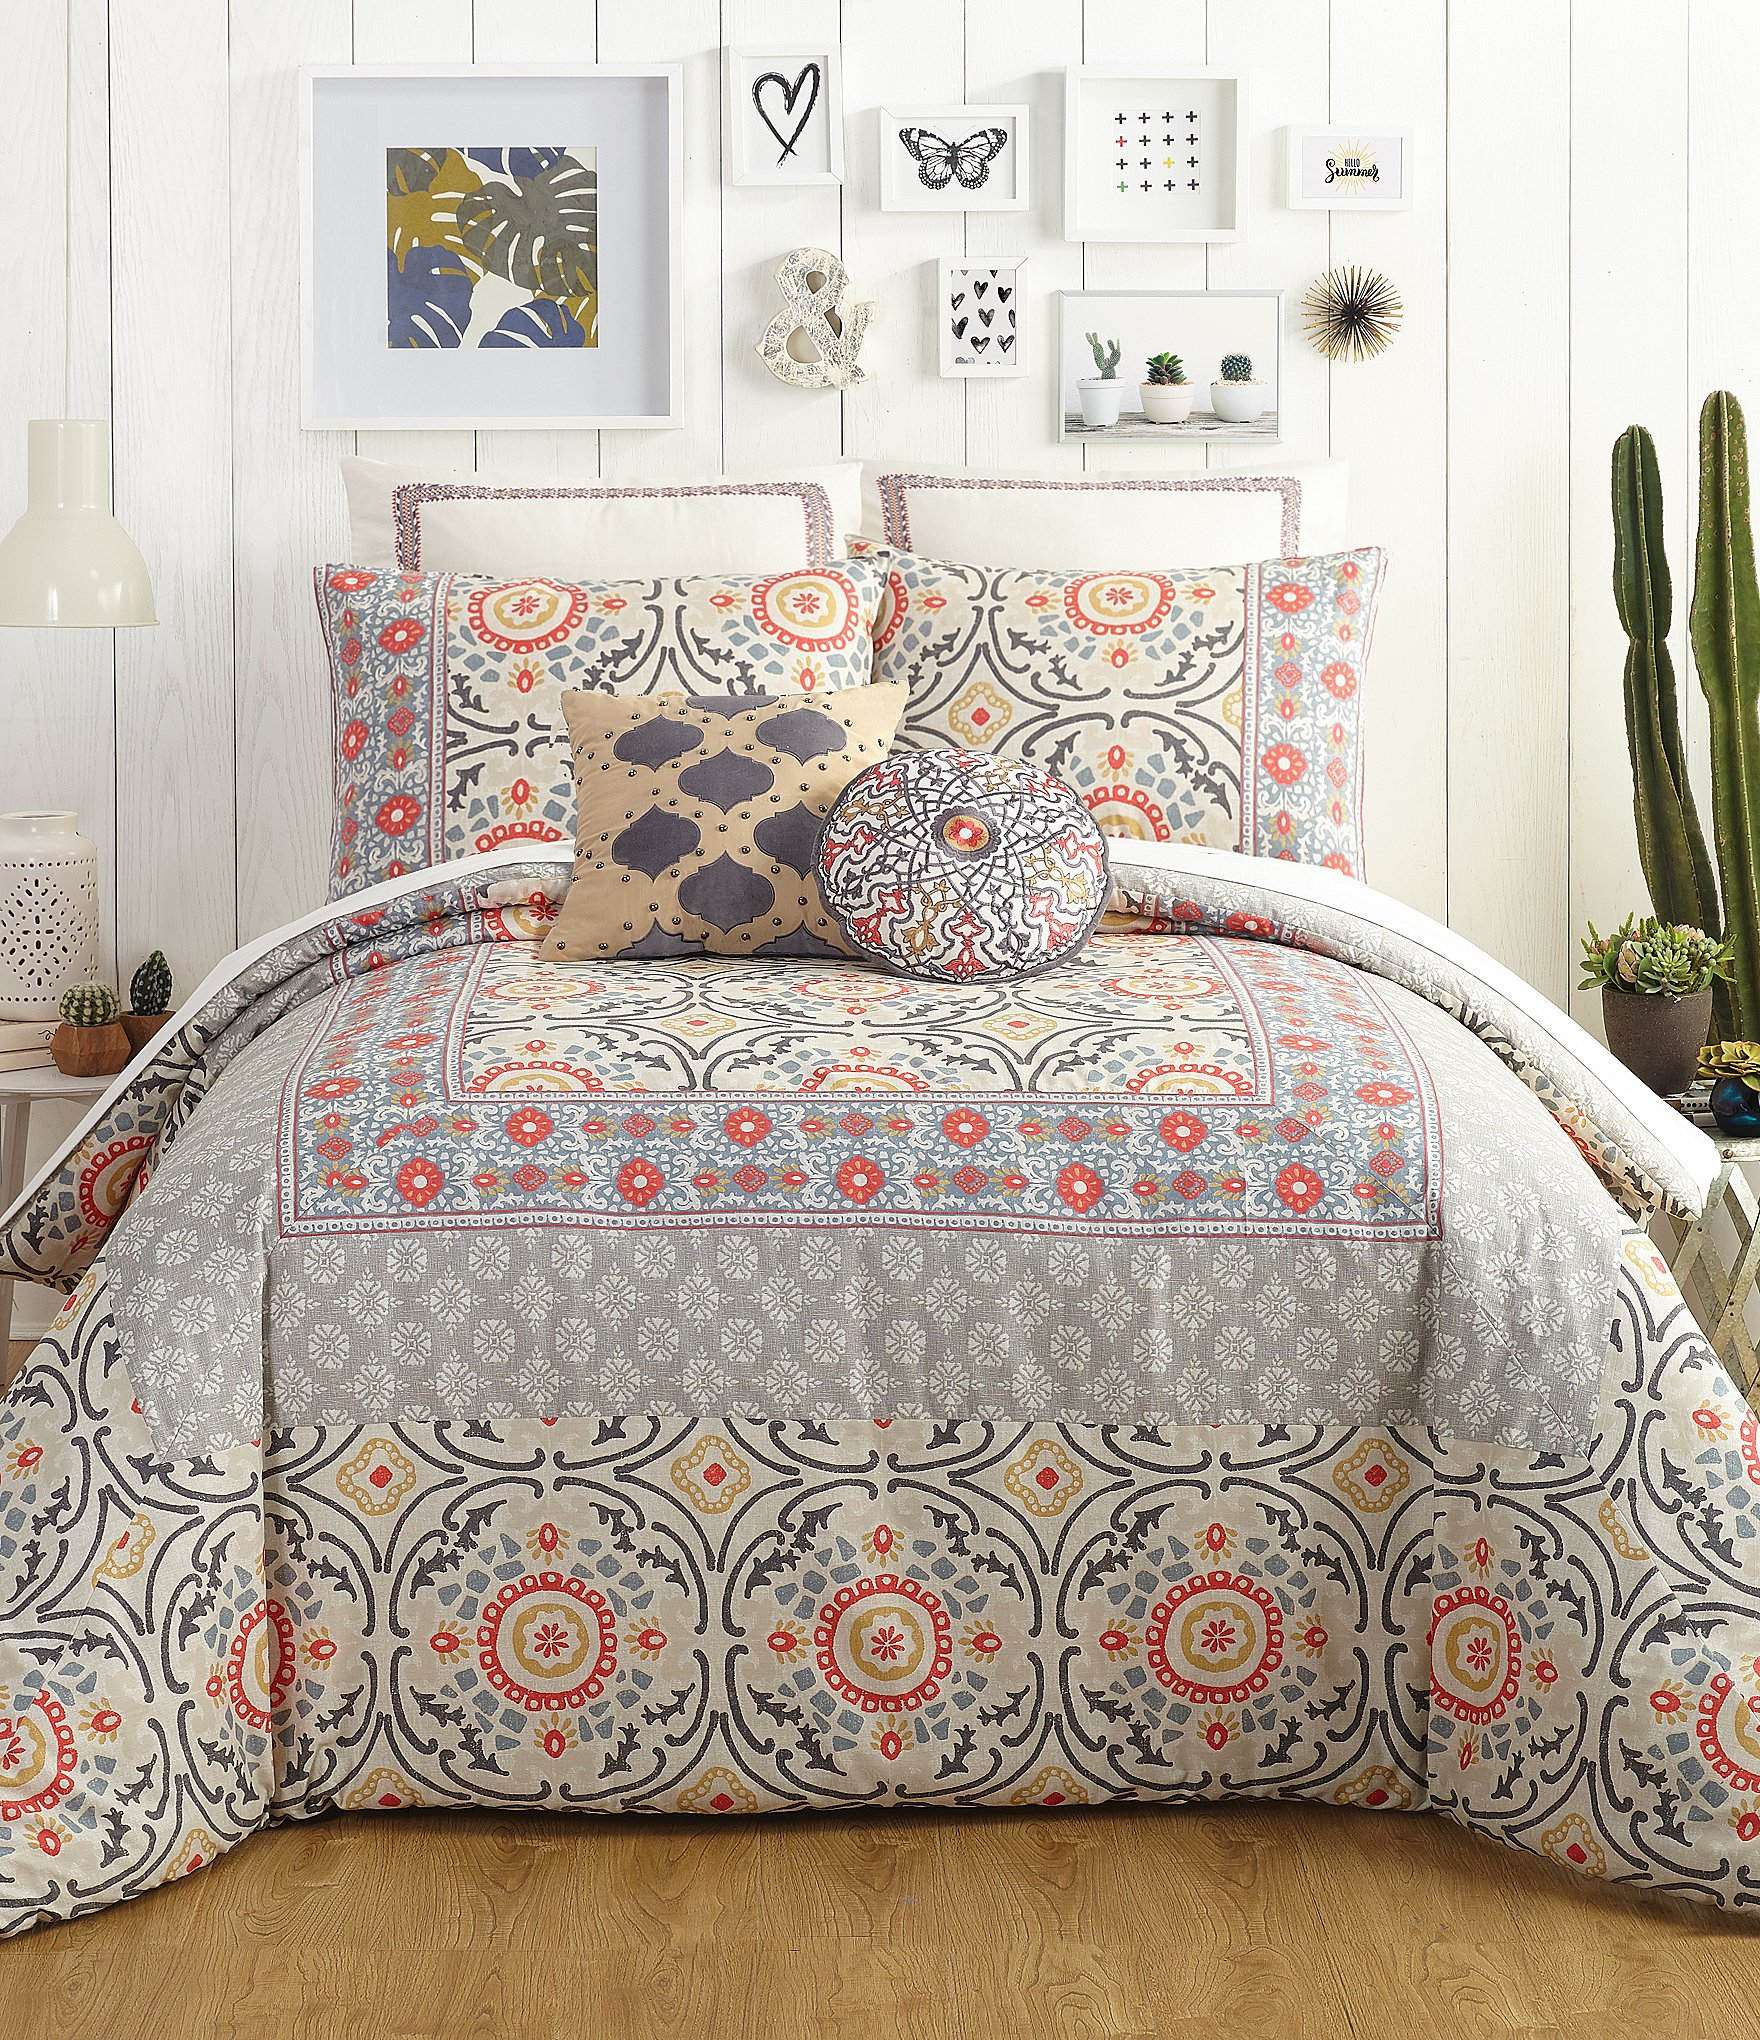 Bed sheet set with quilt - Bed Sheet Set With Quilt 5